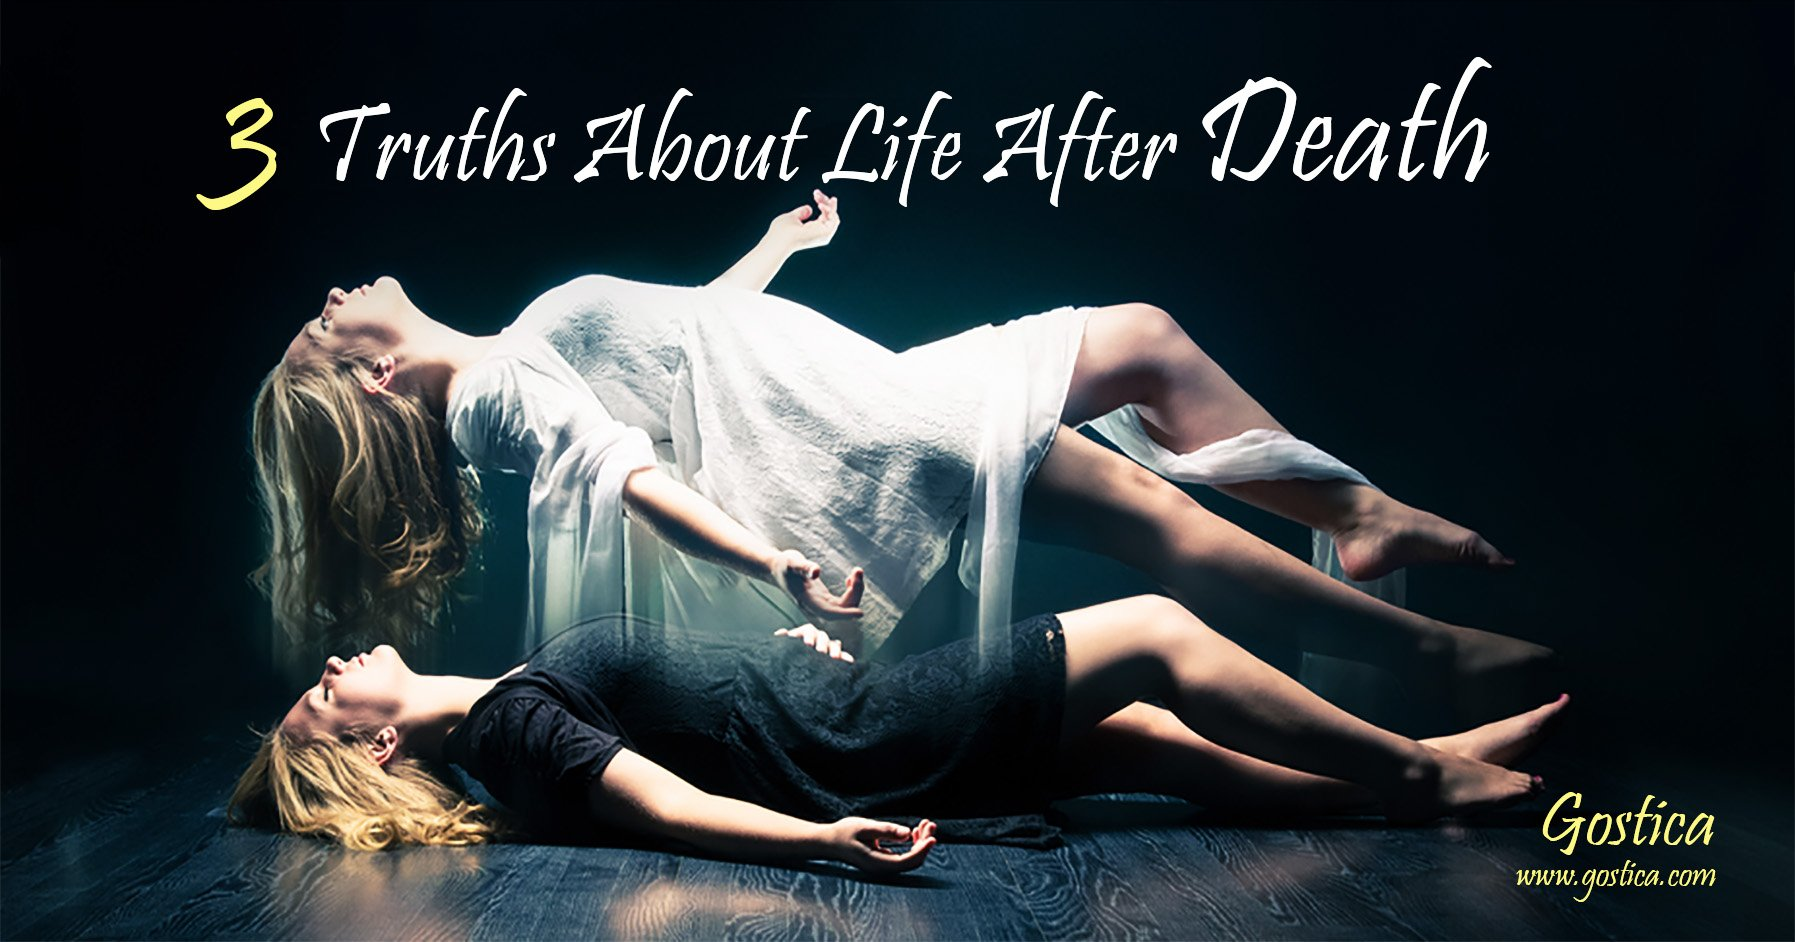 The-3-Truths-About-Life-After-Death-.jpg